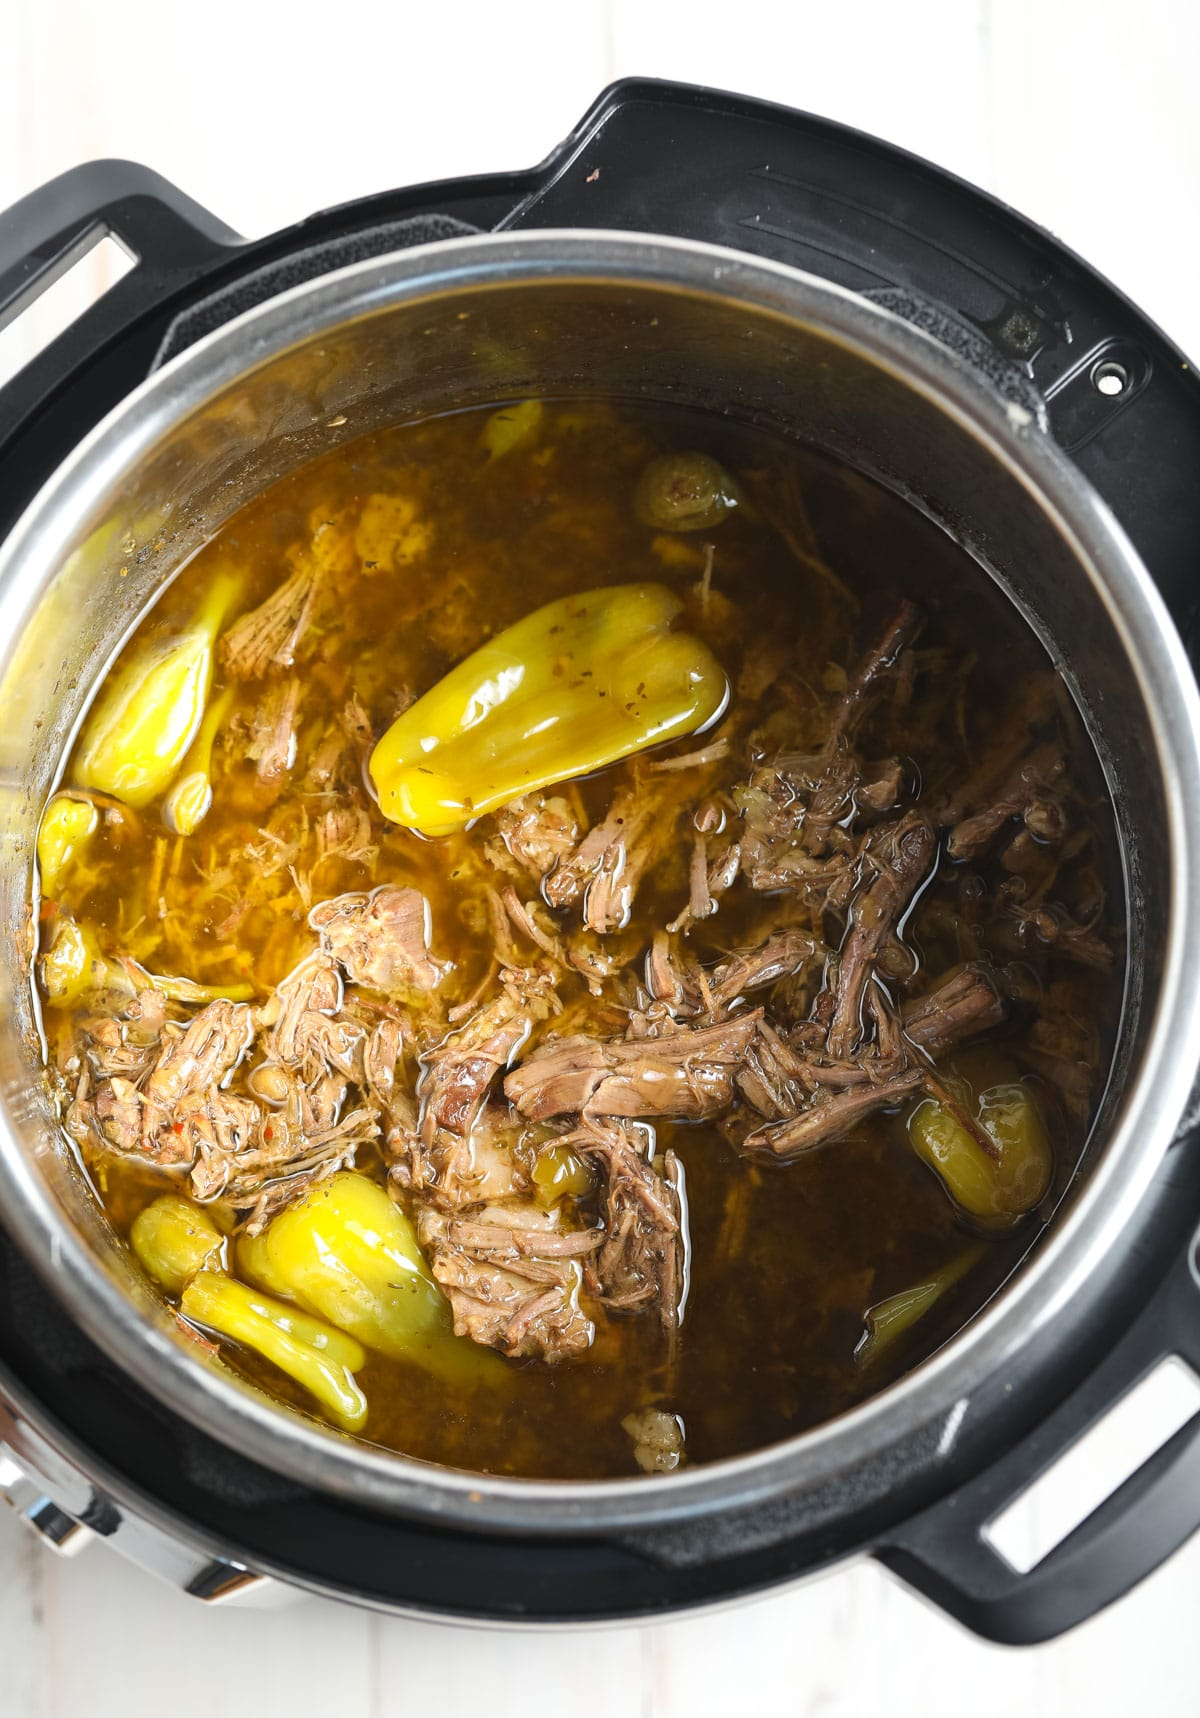 Low Carb Instant Pot Italian Beef Recipe #ASpicyPerspective #pressurecooker #keto #lowcarb #paleo